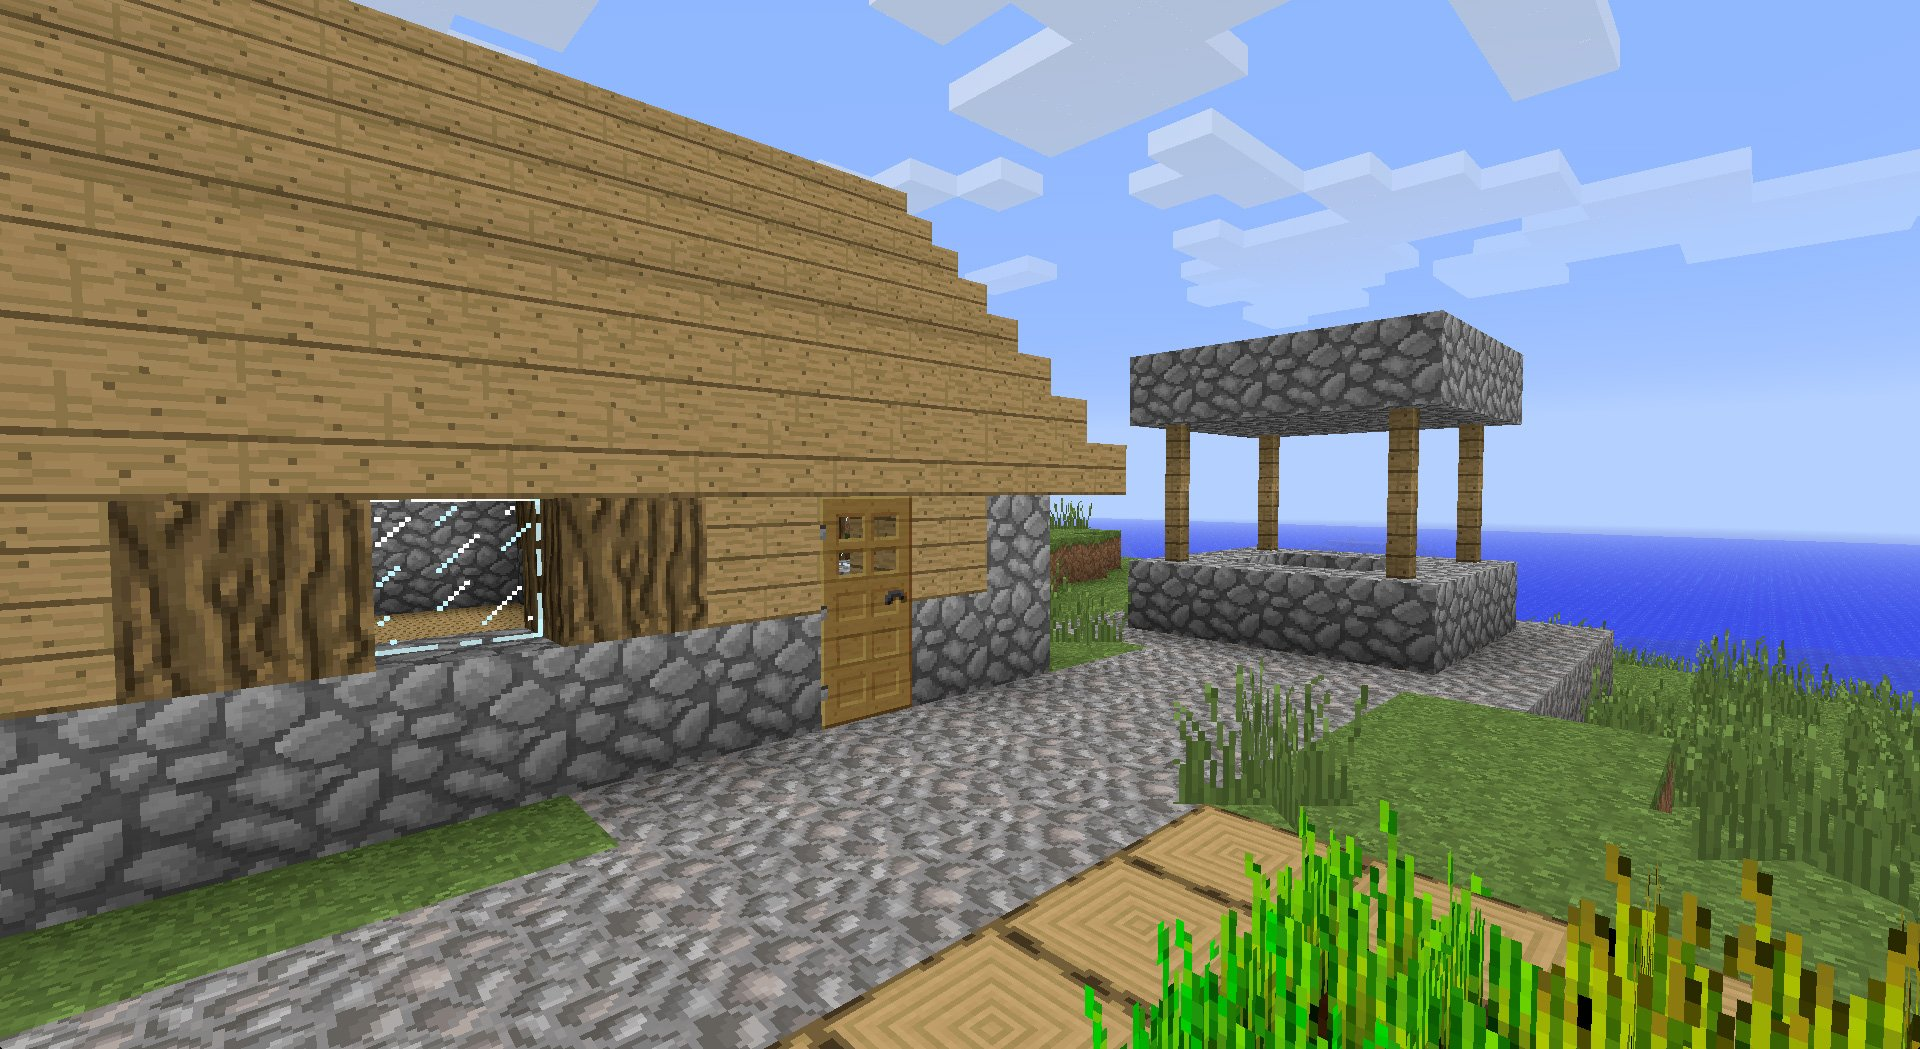 ... is a more detailed 32×32 version of the default Minecraft textures: www.minecrafttexturepacks.com/faithful